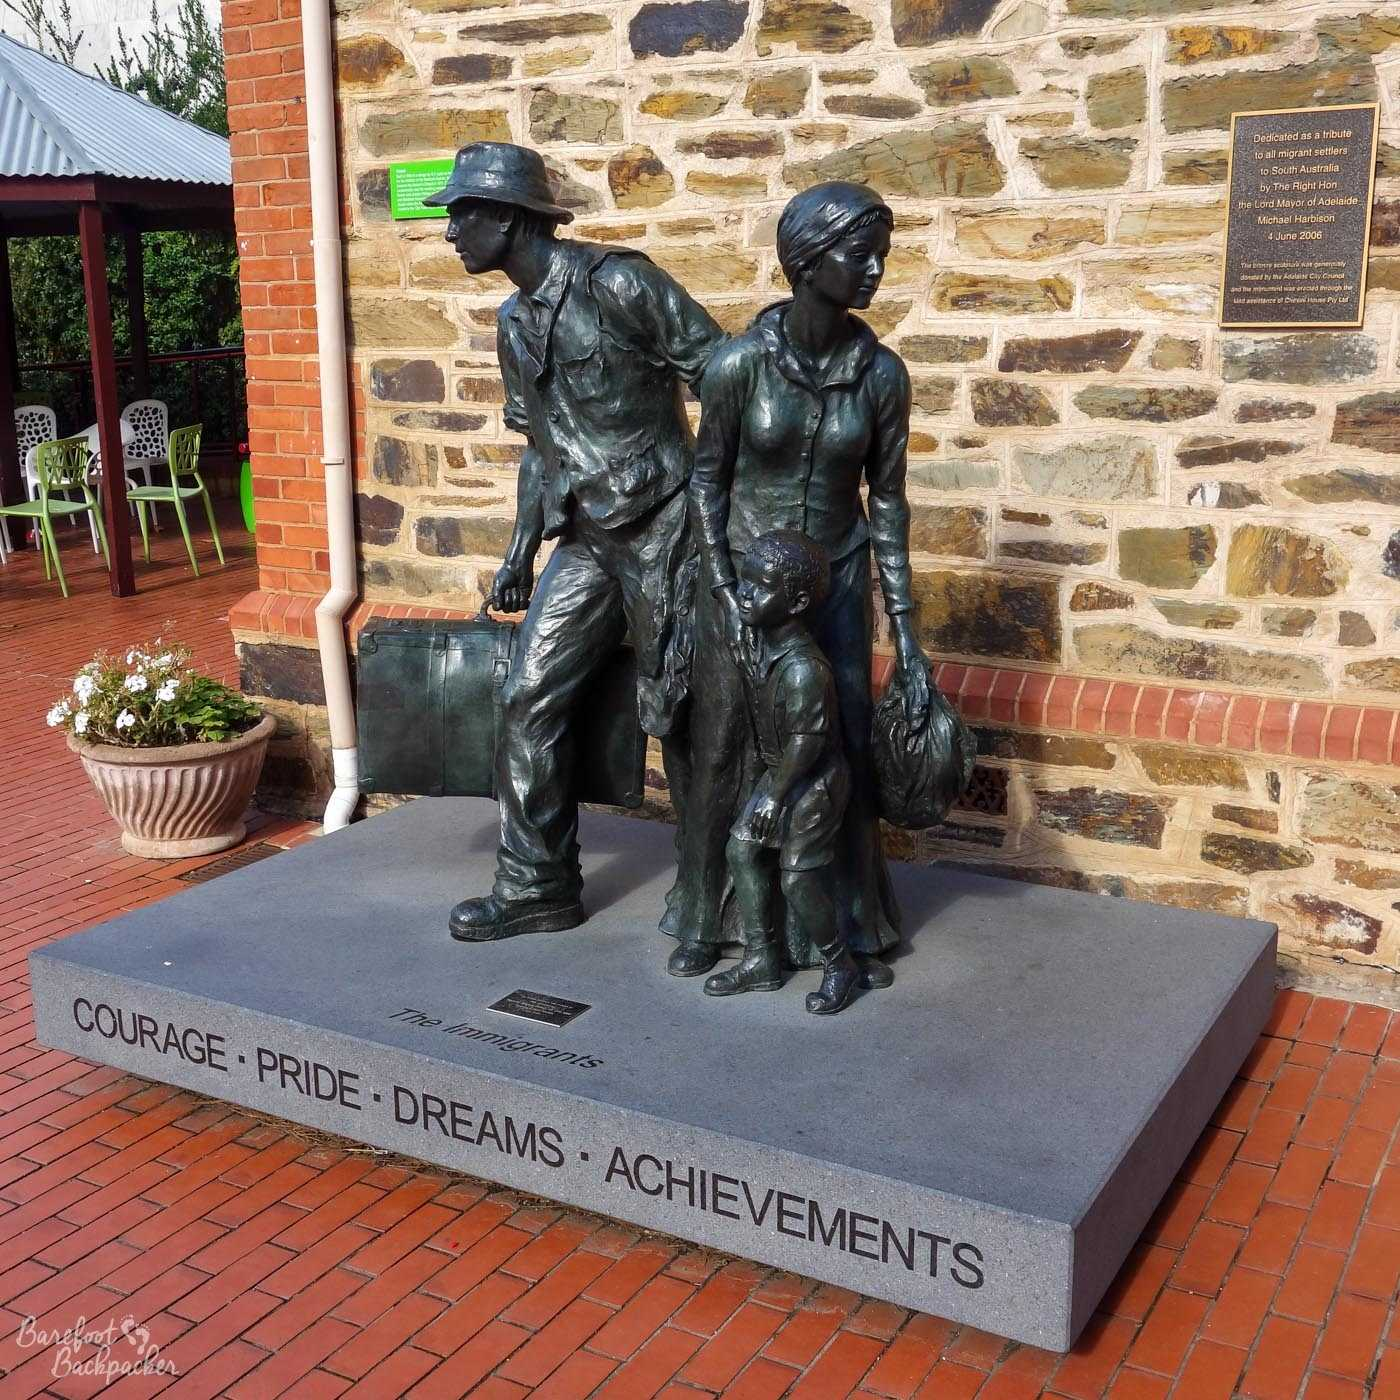 Statue of an immigrant family – father, mother, one kid - outside the Migration Museum. The caption below them says 'Courage. Pride. Dreams. Achievements.'. The plaque on the wall behind says 'Dedicated as a tribute to all migrant settlers to South Australia'. What it does not specify is the … preference for the type of immigrant, but that's a story for another post.